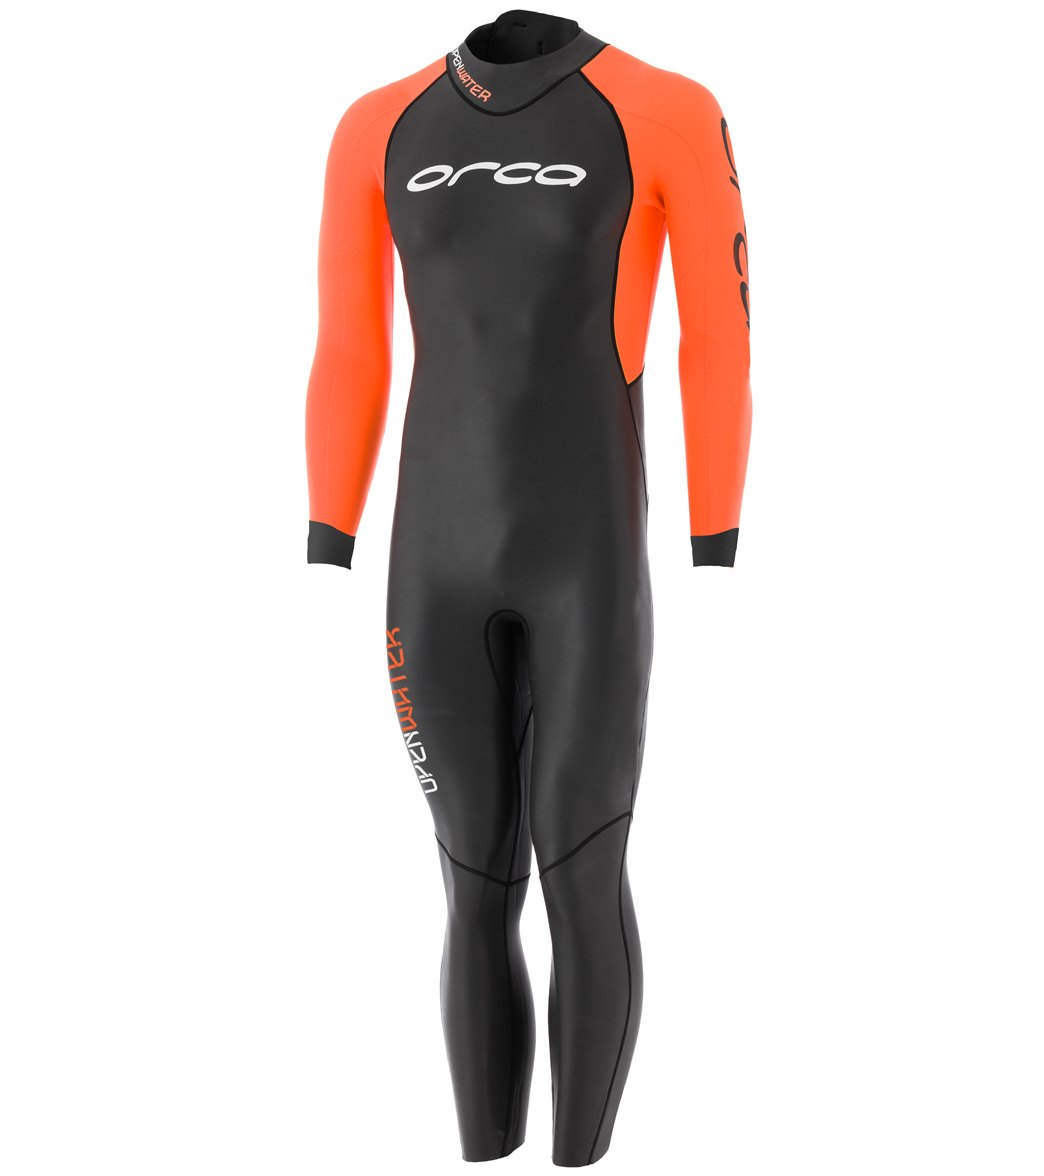 Orca Men's Open Water Fullsleeve Wetsuit at SwimOutlet.com - Free Shipping